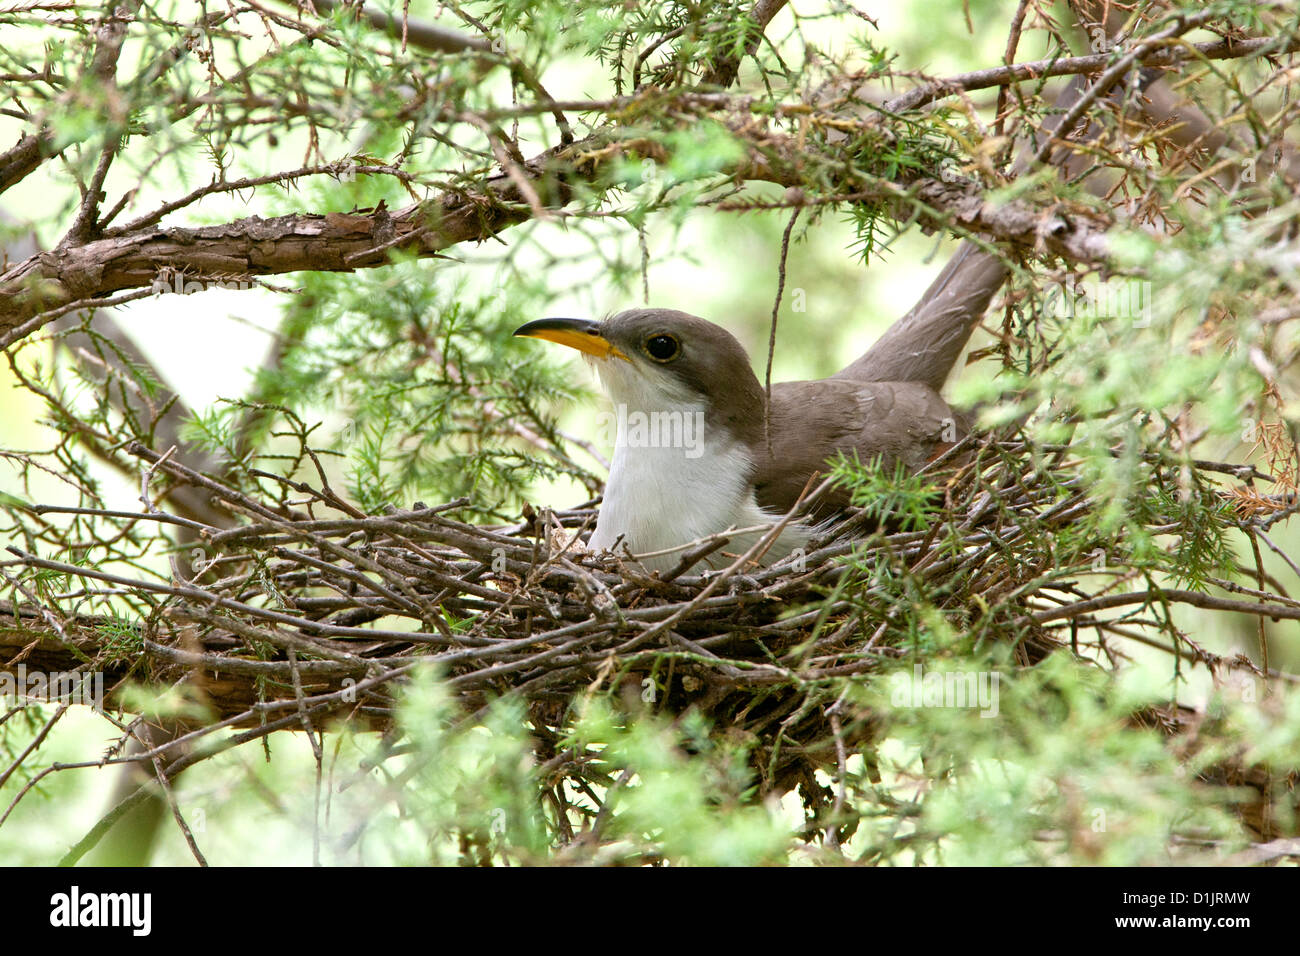 Yellow-billed Cuckoo on nest - Stock Image